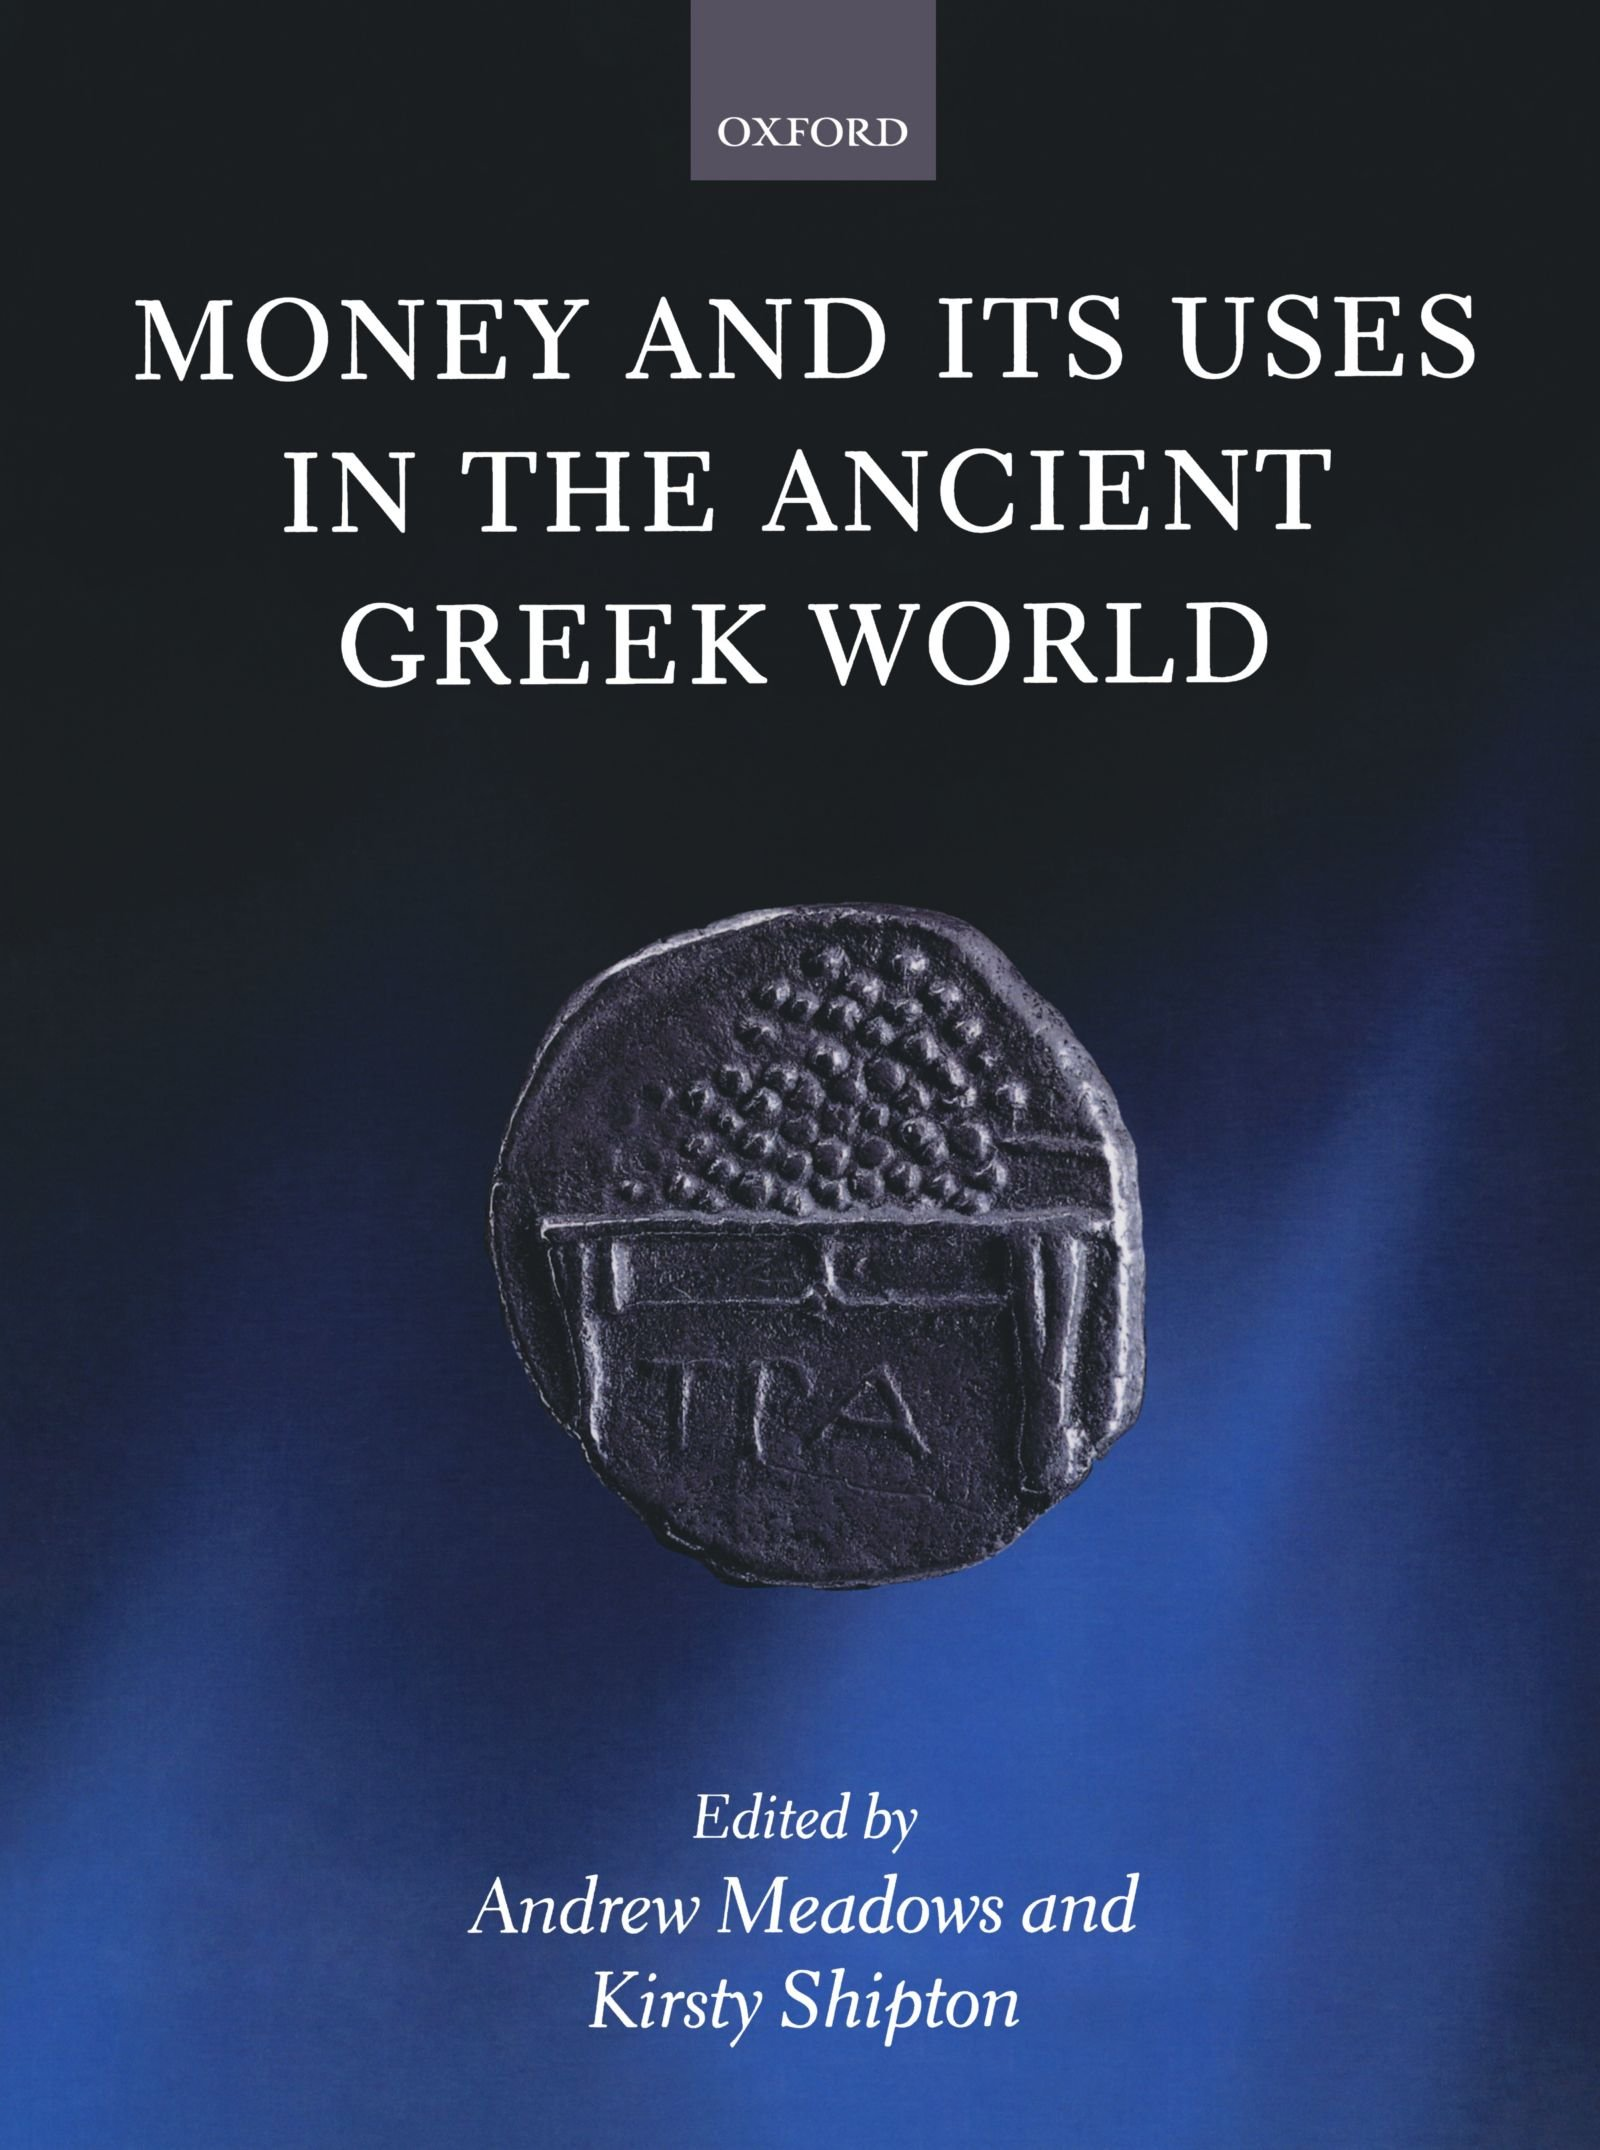 Money and Its Uses in the Ancient Greek World by Oxford University Press